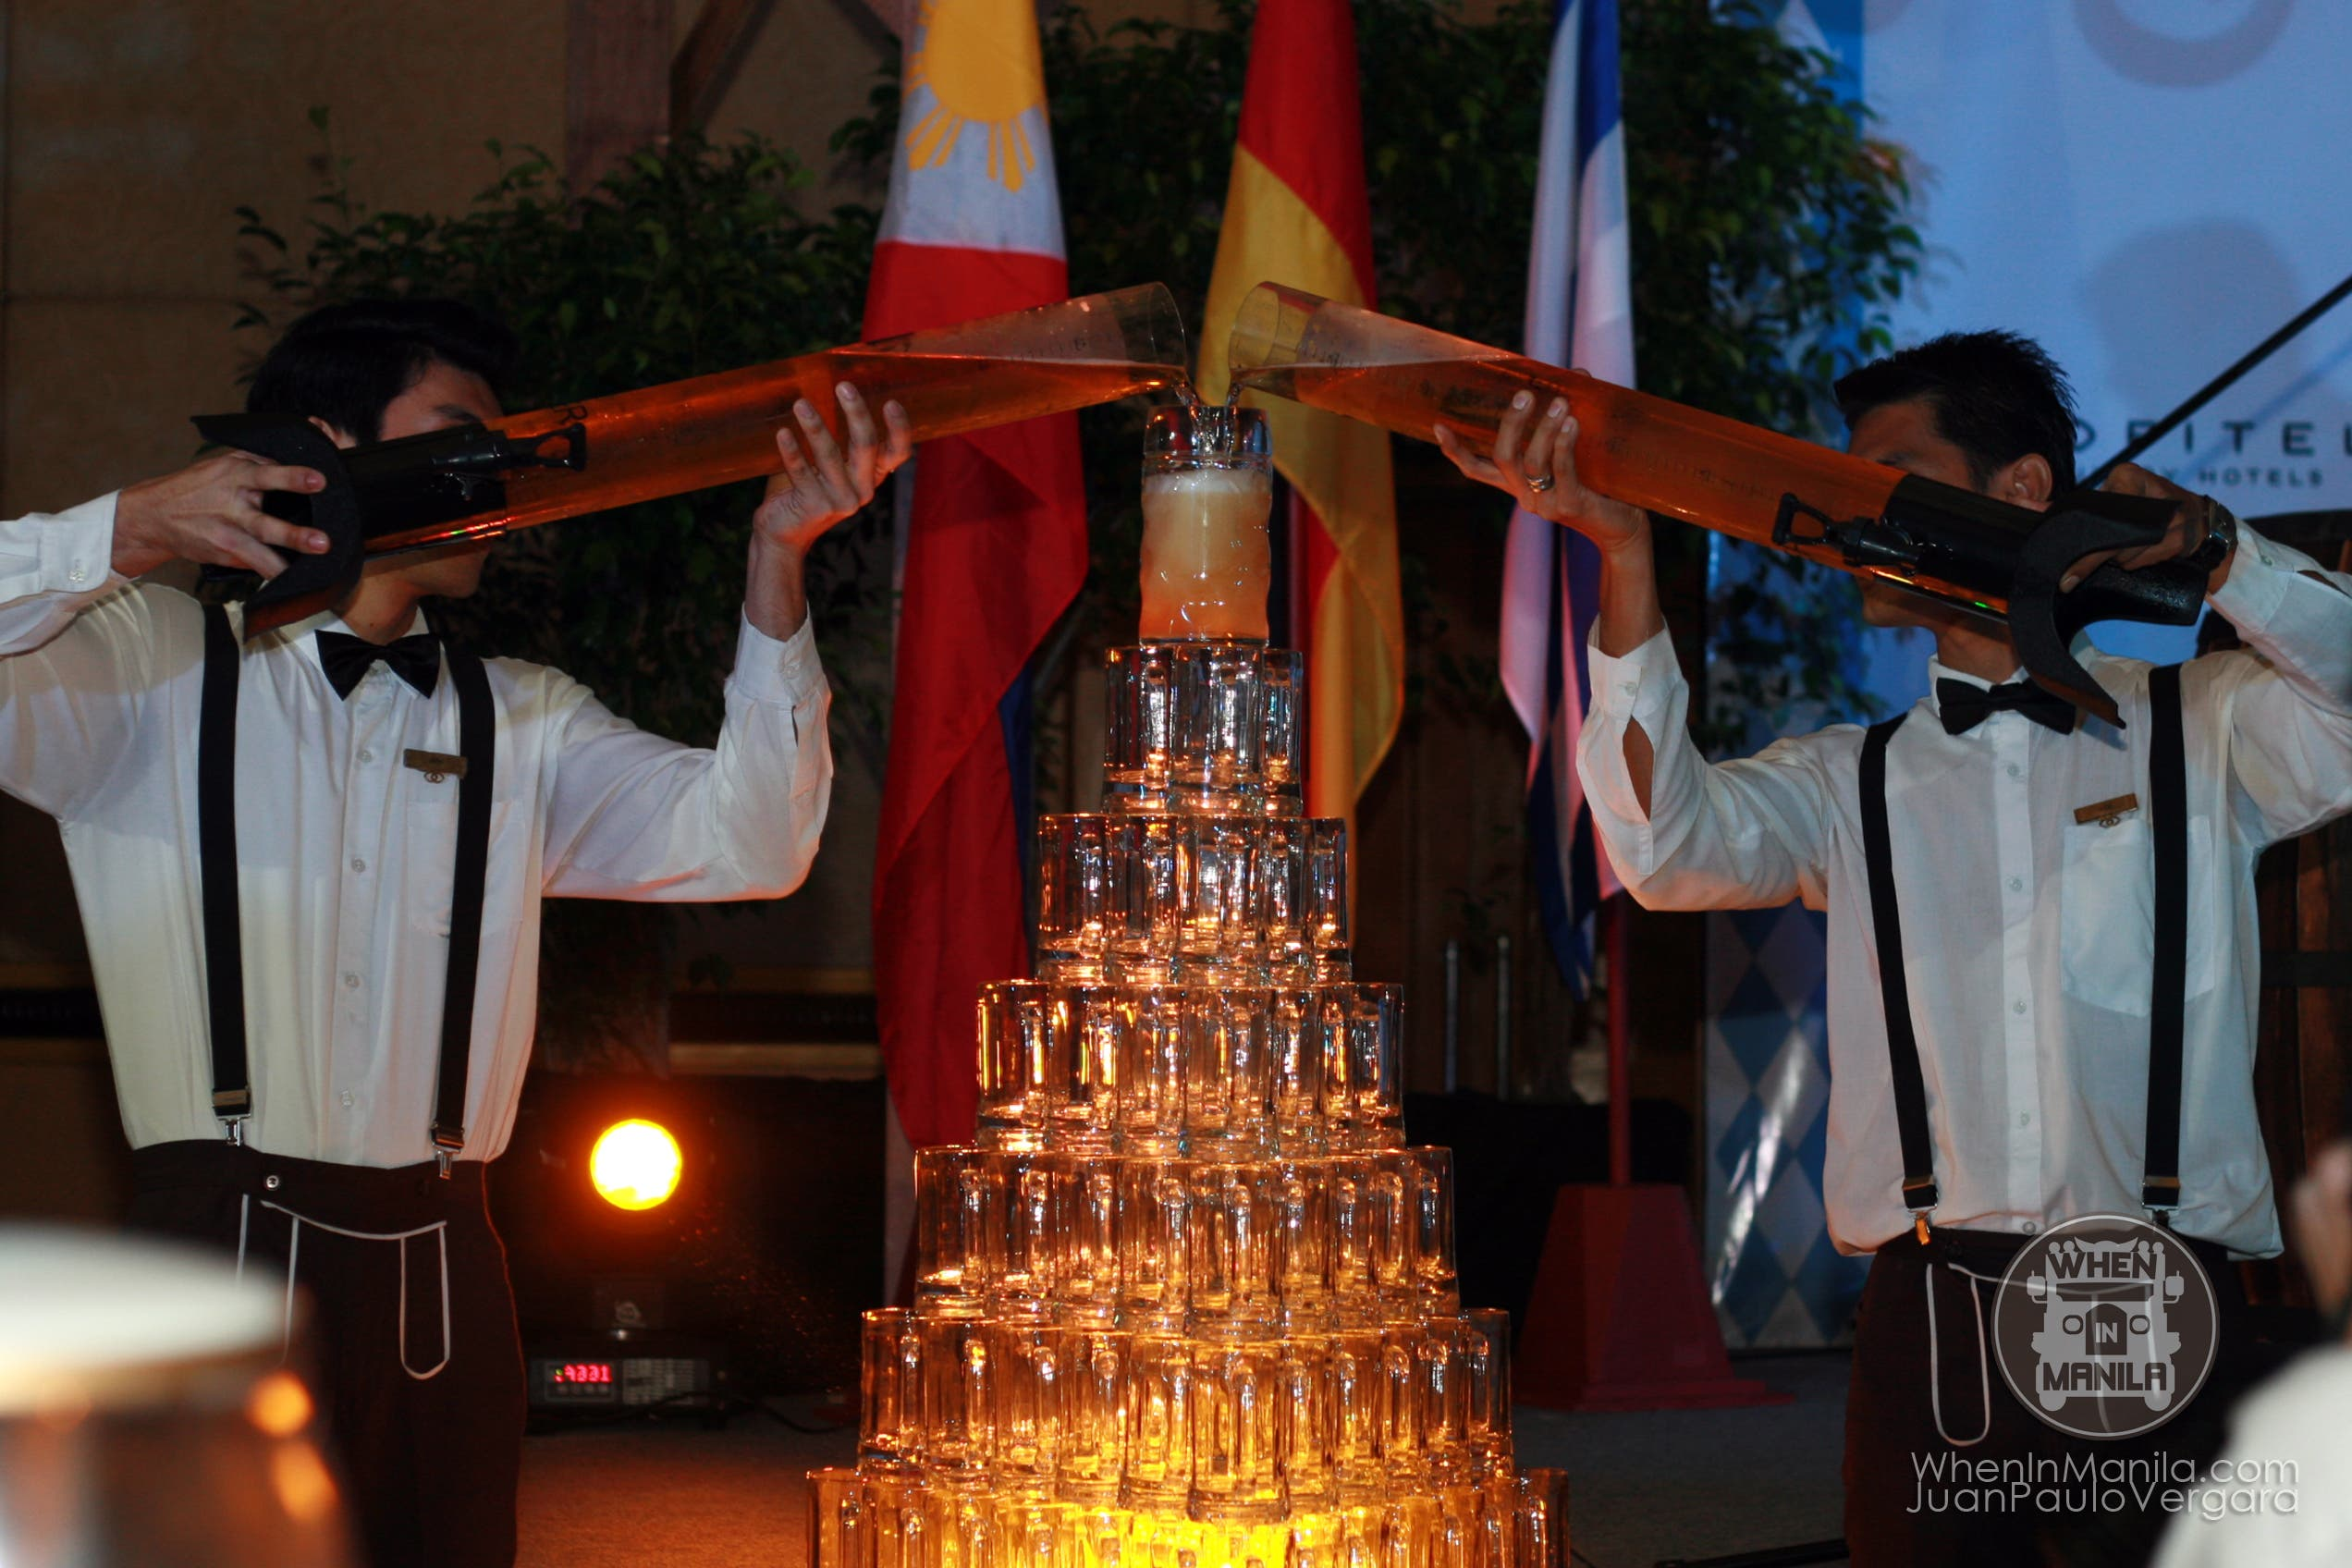 Oktoberfest Manila 2013 pouring of beer over tower of glass